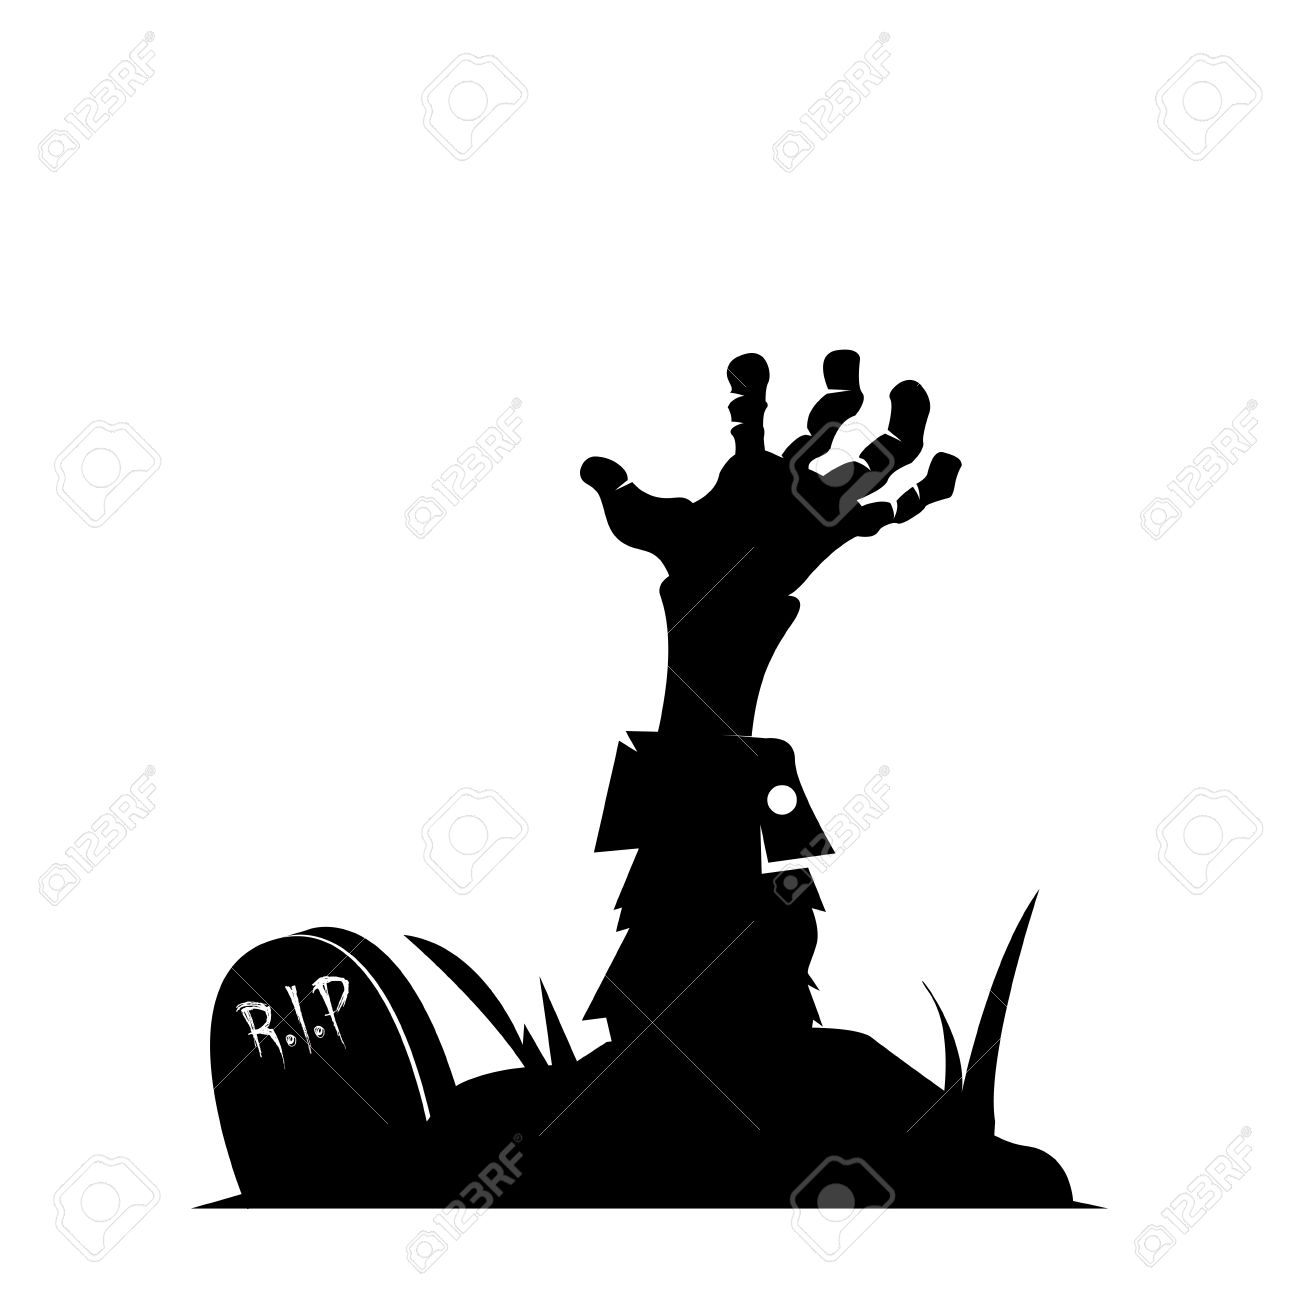 1300x1300 Isolated Silhouette Of A Zombie Hand, Vector Illustration Royalty